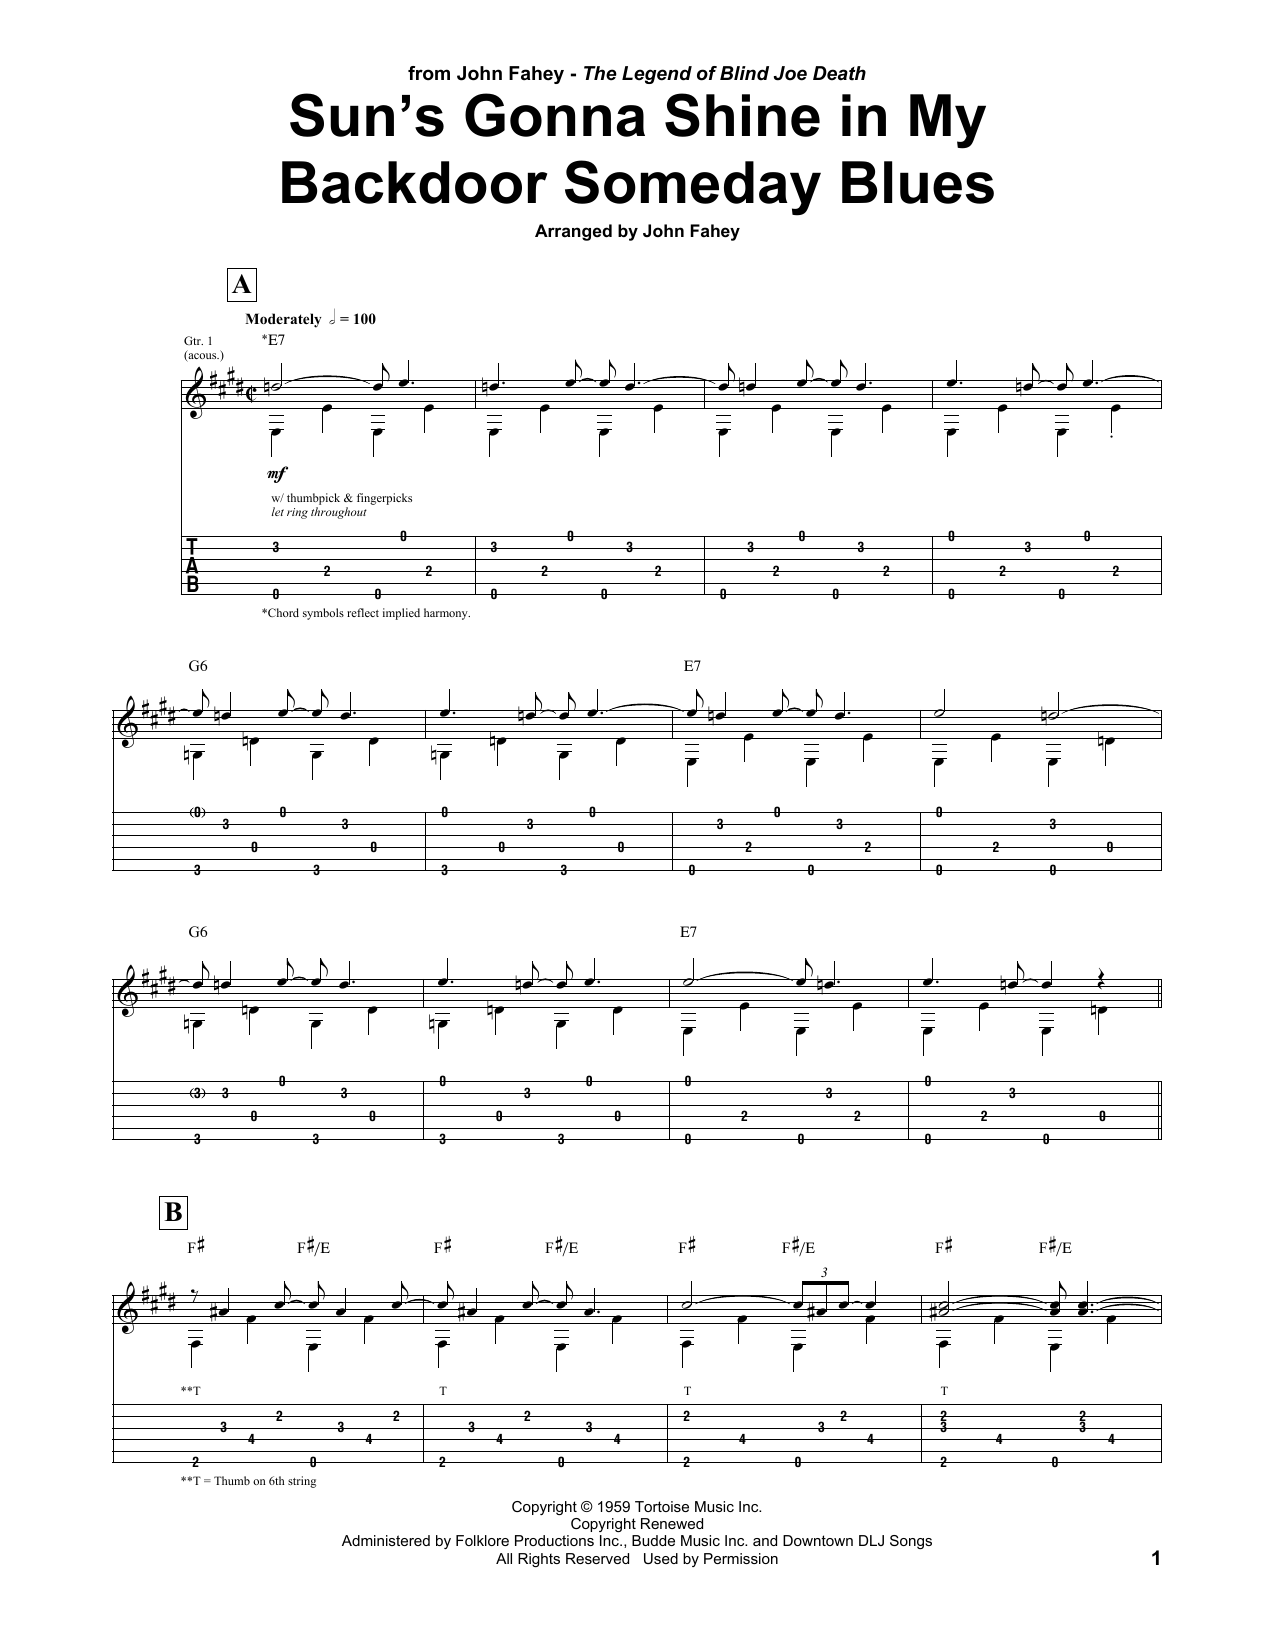 Sun's Gonna Shine In My Backdoor Someday Blues Sheet Music